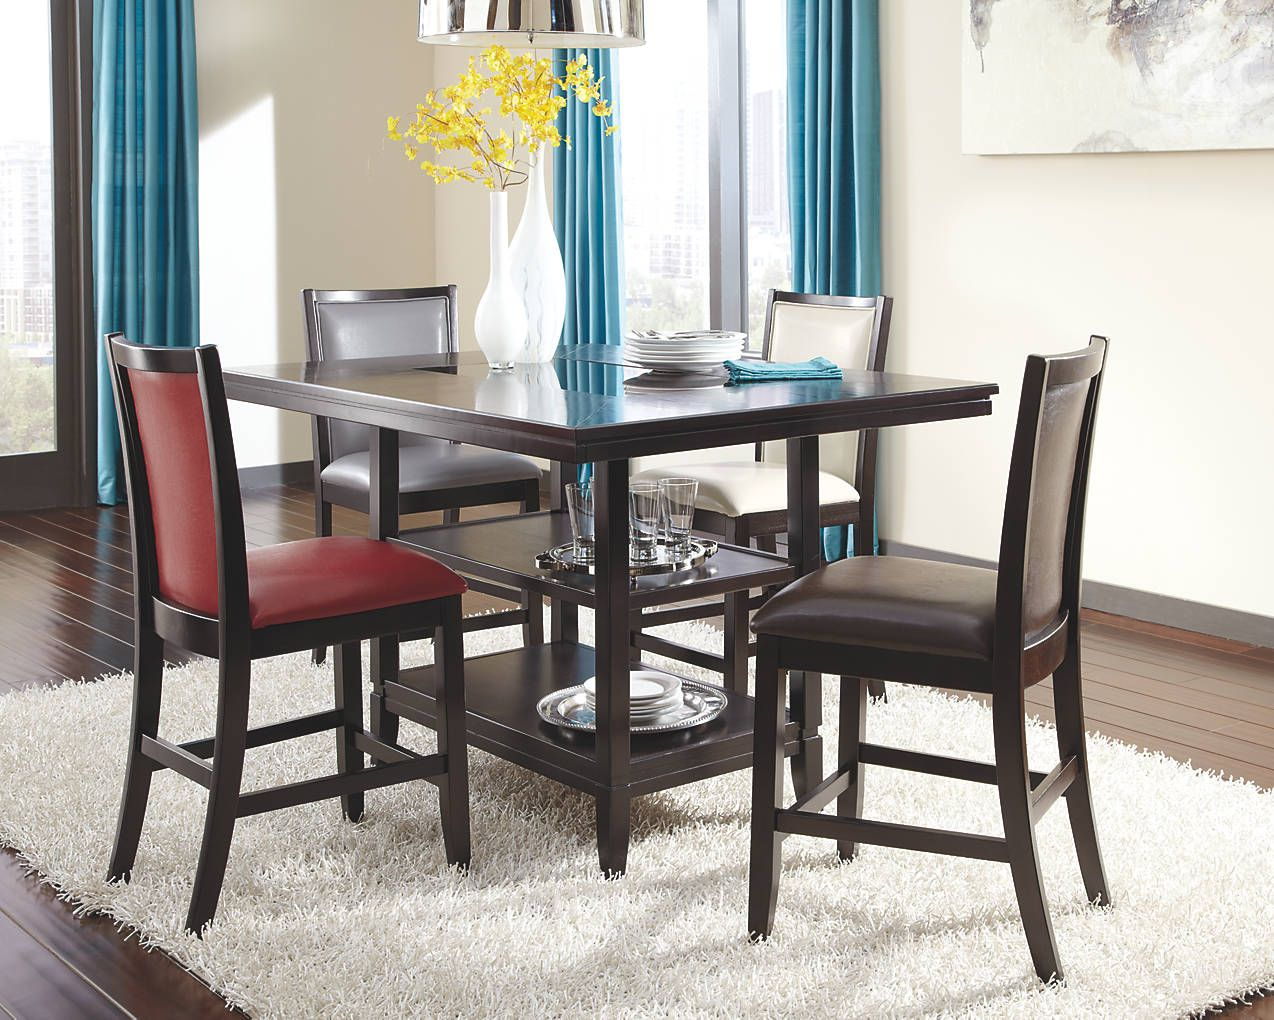 Trishelle counter height table with matching bar chairs in four ...